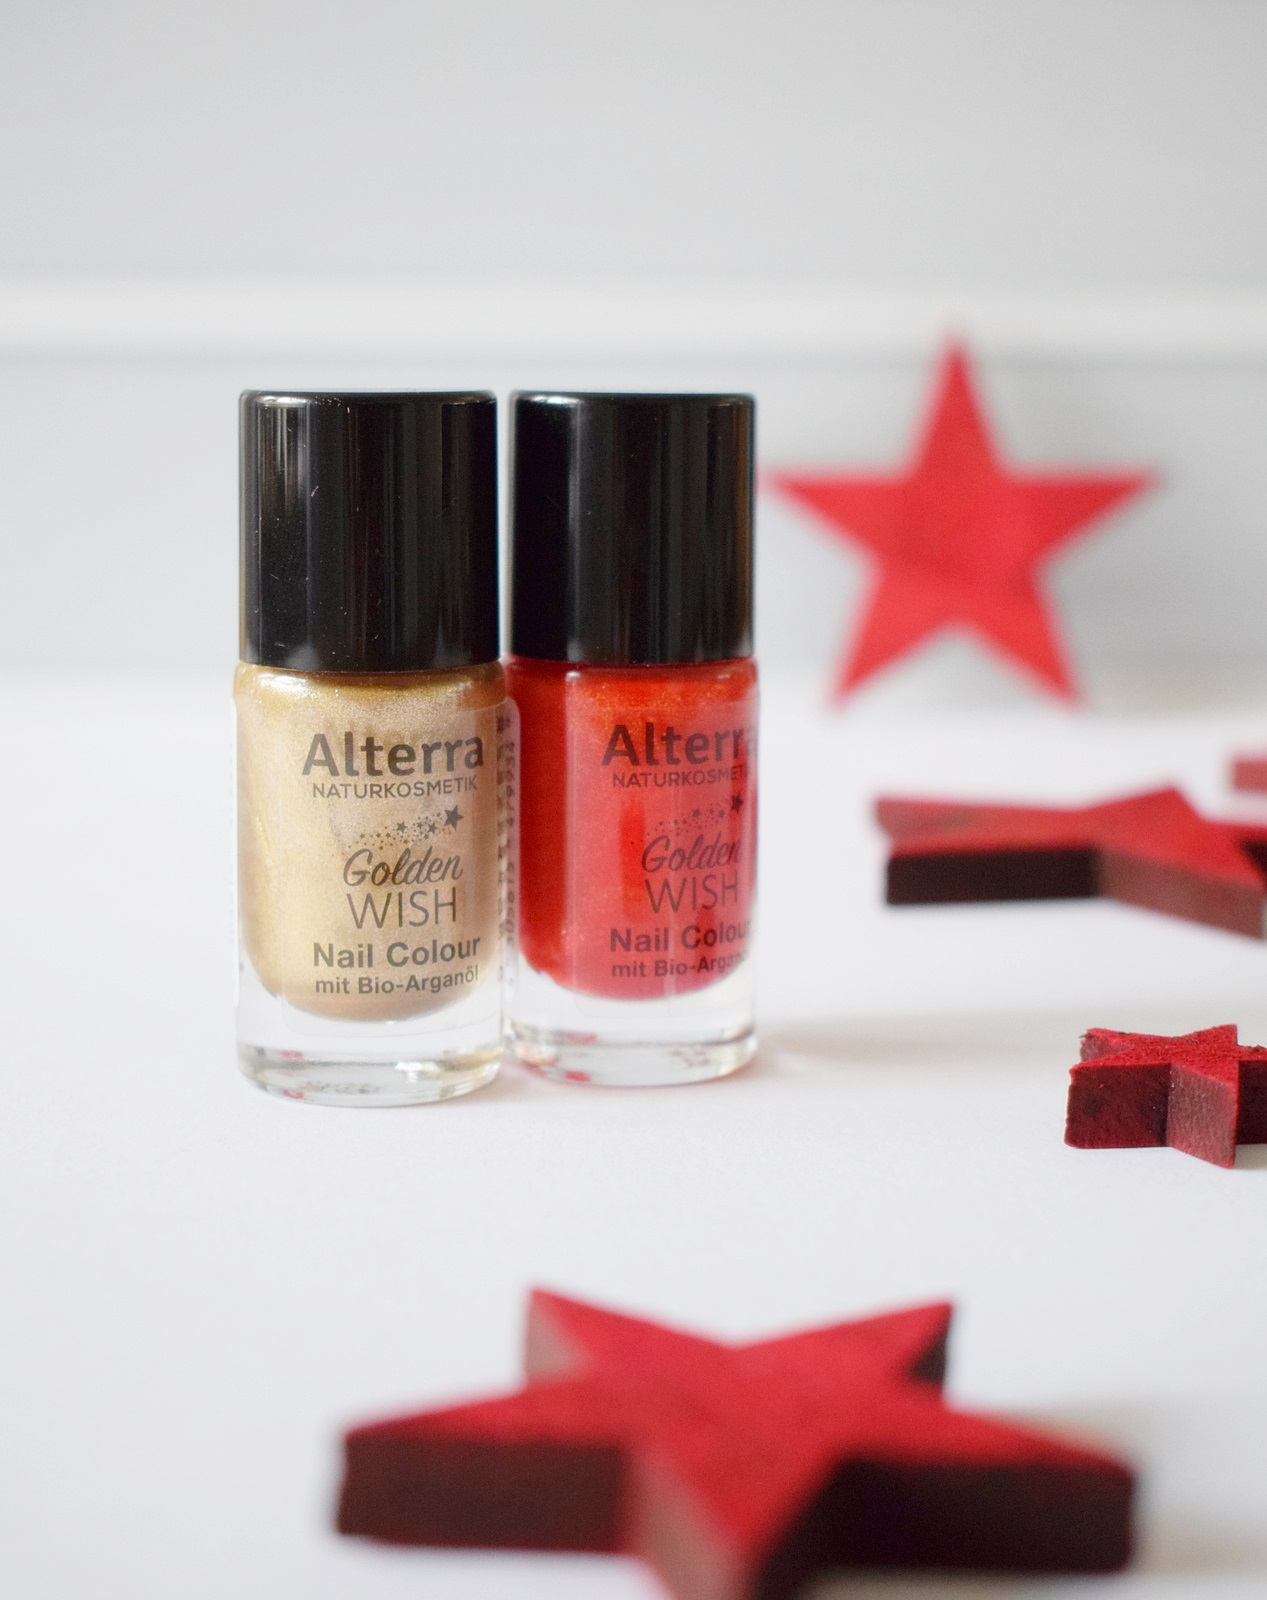 nagellack-alterra-golden-wish